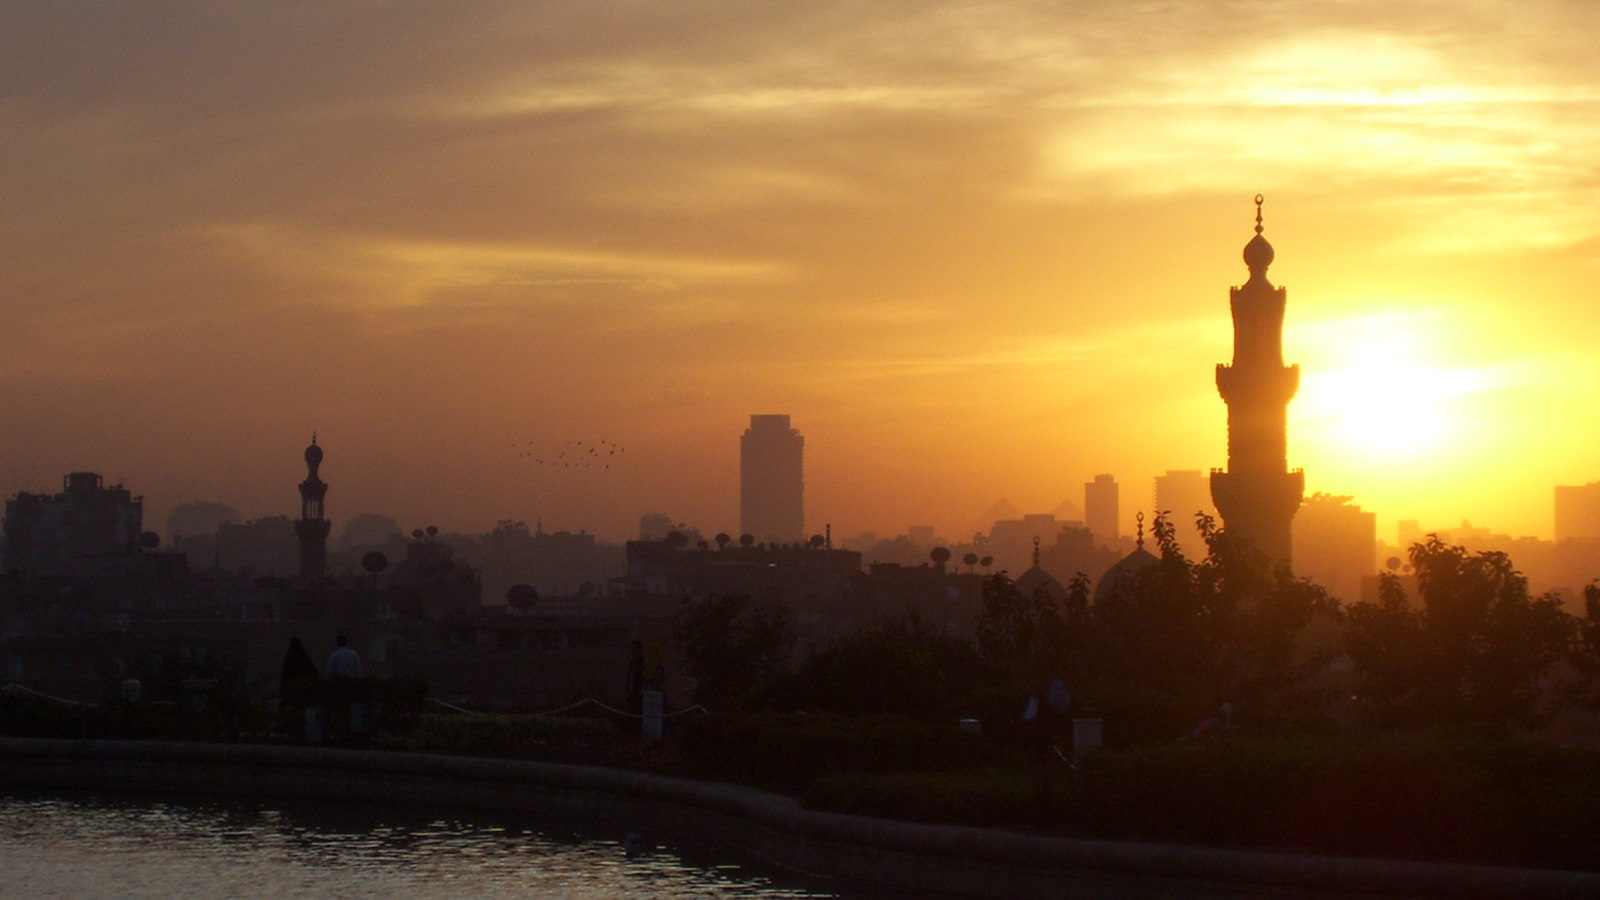 Cairo, Egypt Skyline with Minaret